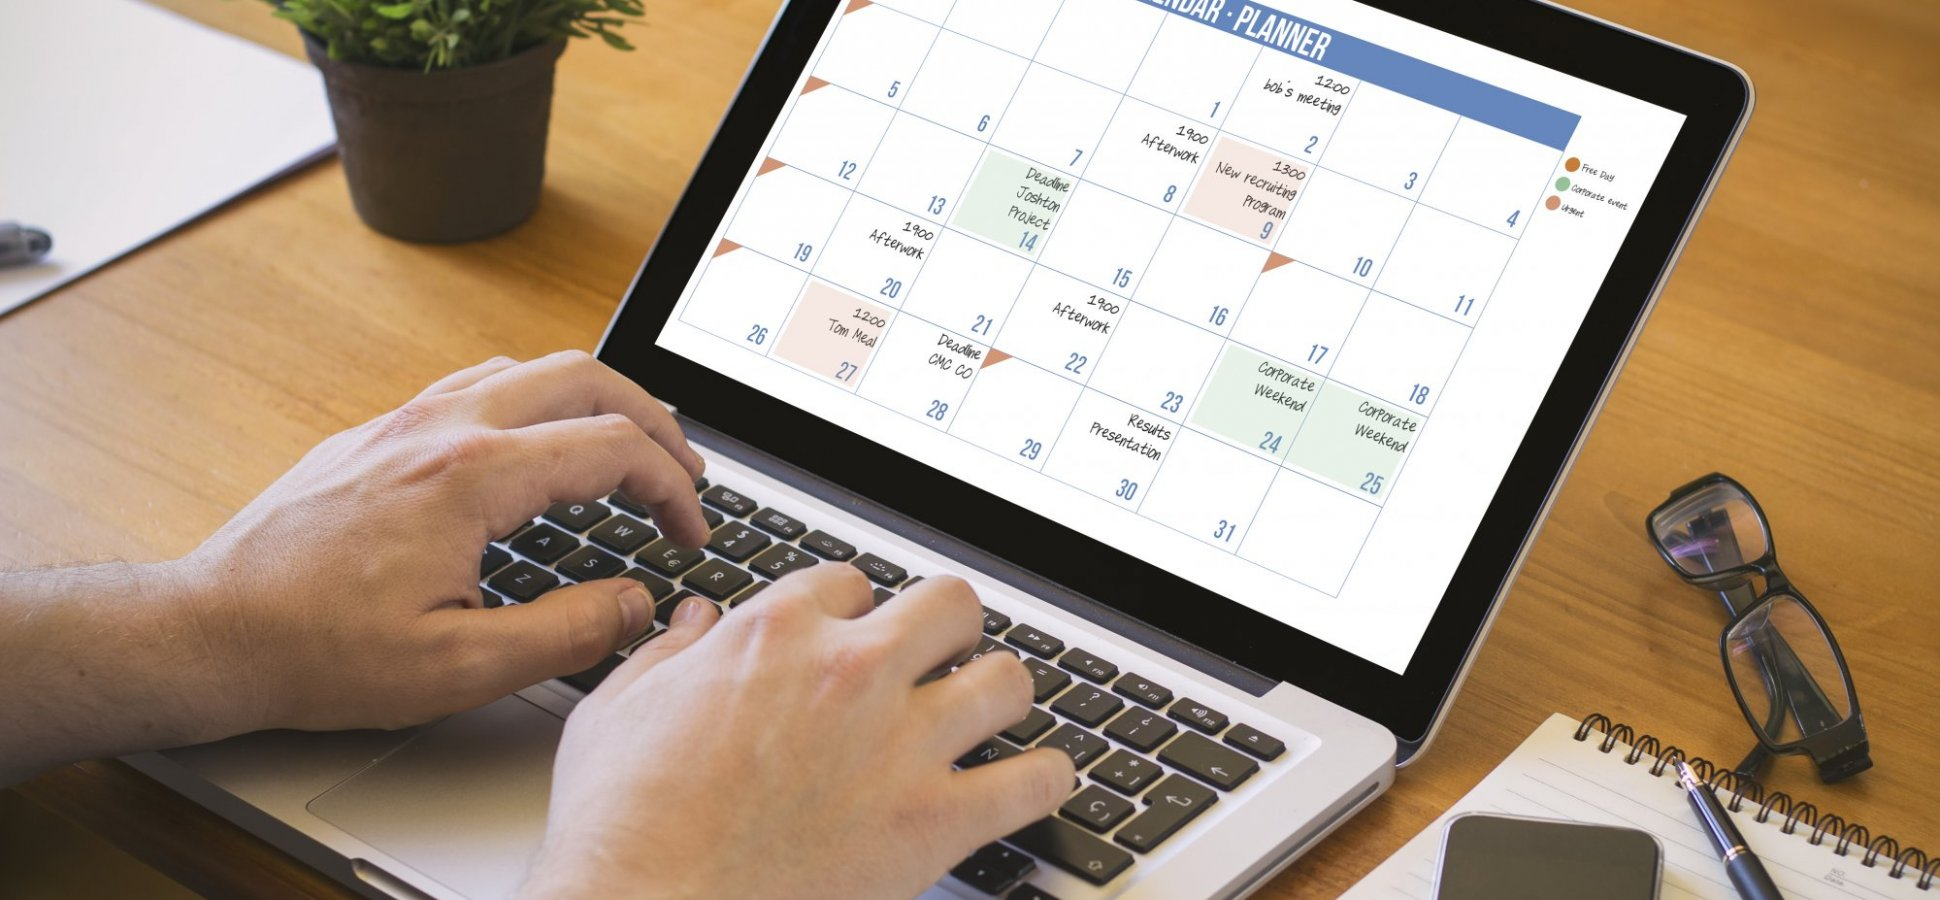 Here's How to Fix the Annoying New Problem With Web-Based Calendars (Like Google)